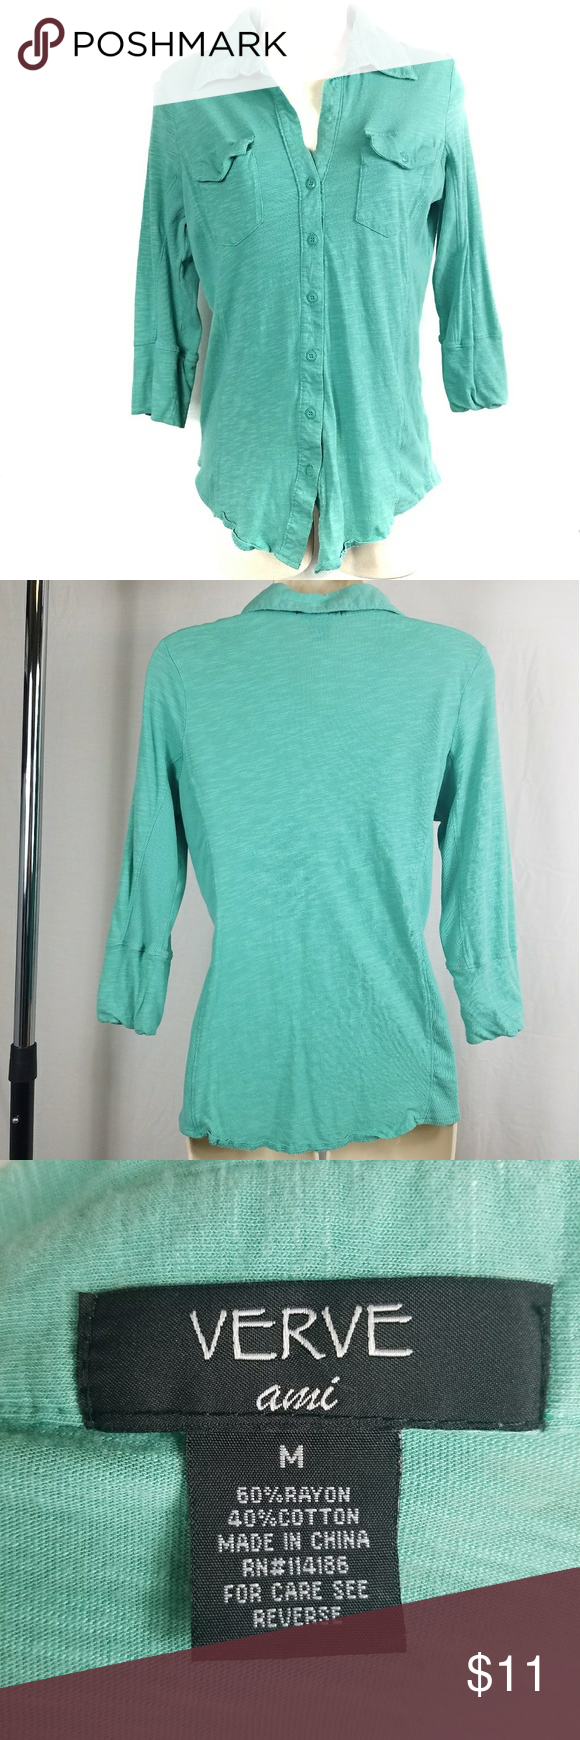 """VERVE ami Collared Button Down 3/4 Sleeve This VERVE ami women's size medium shirt has 3/4 length sleeves, button down front with two small pockets, and is in very good preowned condition.  All measurements aredone with item laying flat, not stretched,and are of the front of the item only.Measurements may vary by up to 1/2"""".  Shoulder width: 16"""" Bust: 19"""" Length: 25"""" (front collar to bottom hem) Hem: 19"""" Verve Ami Tops Button Down Shirts"""